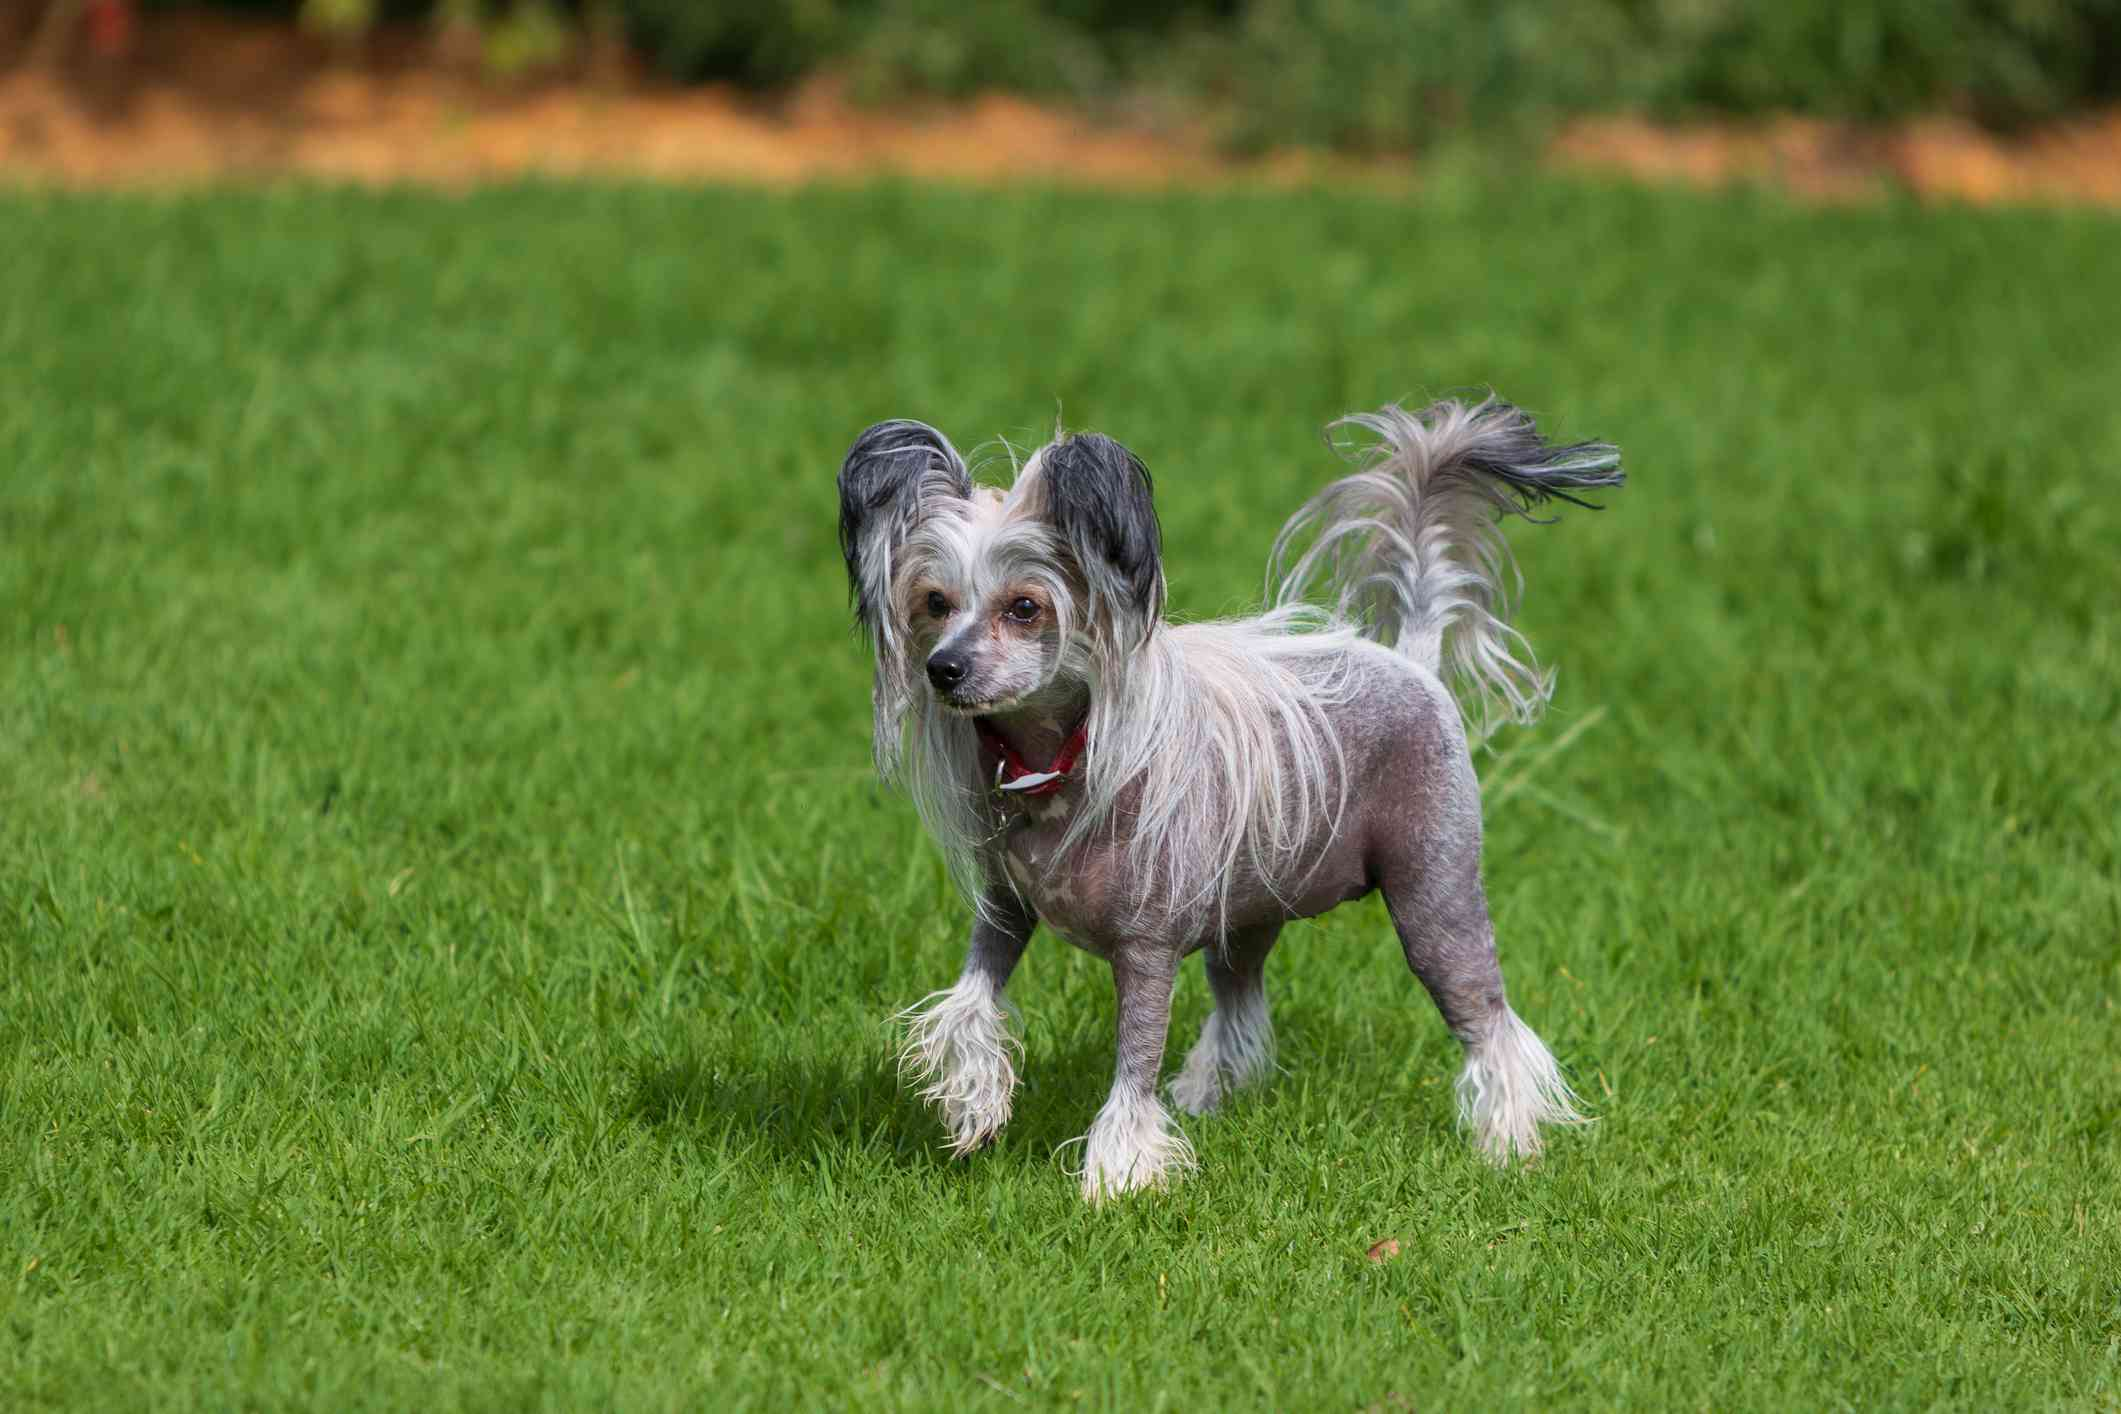 Chinese Crested Dog having fun at the dog park